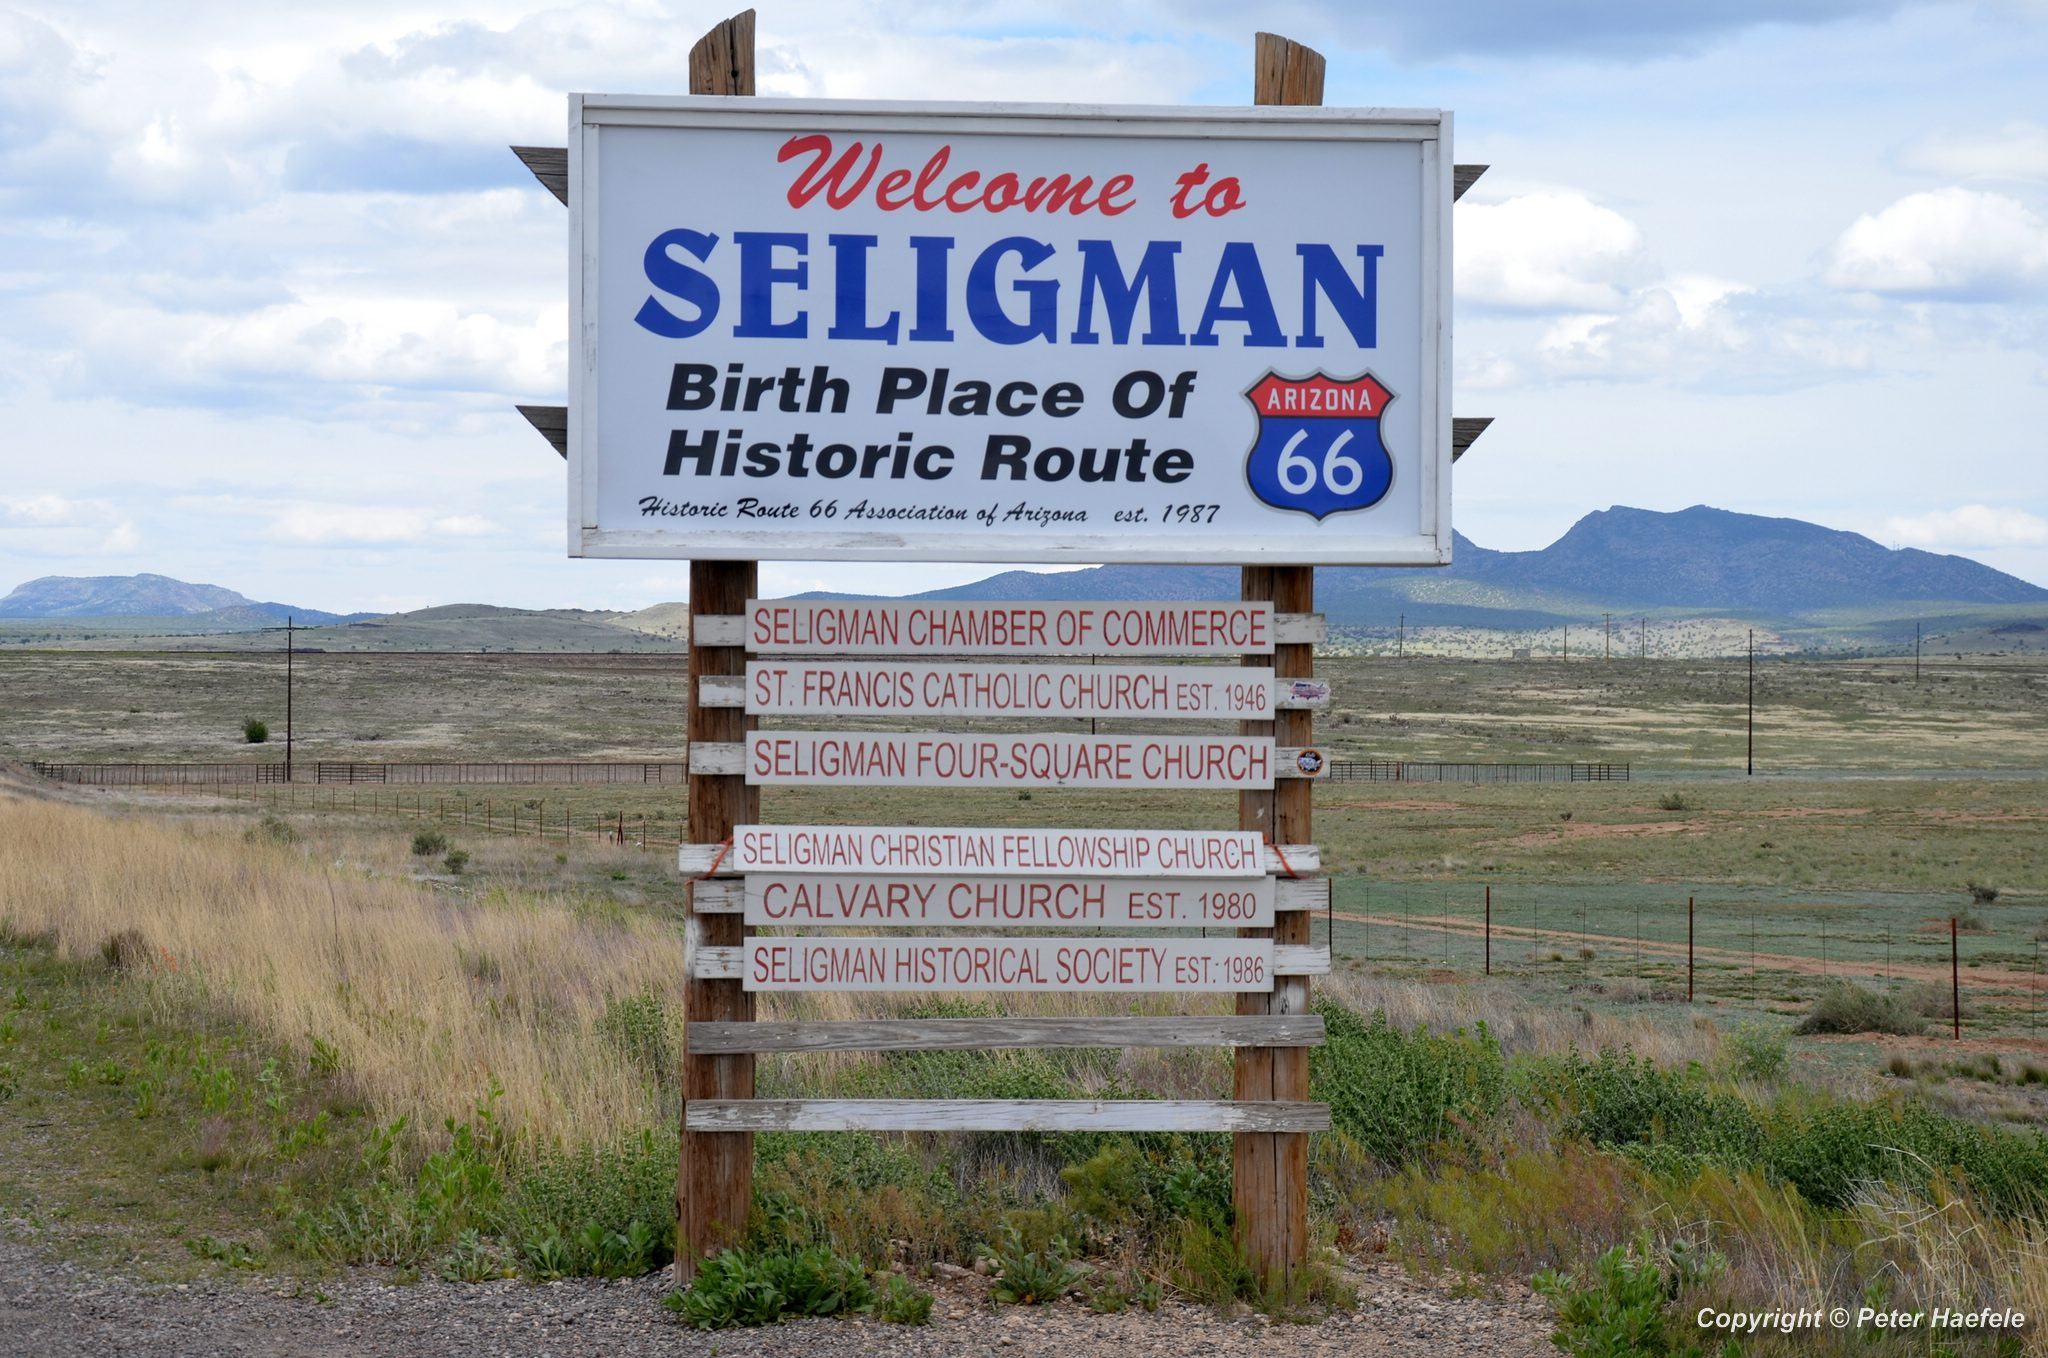 Roadtrip USA - Welcome to Seligman - Birthplace of Historic Route 66